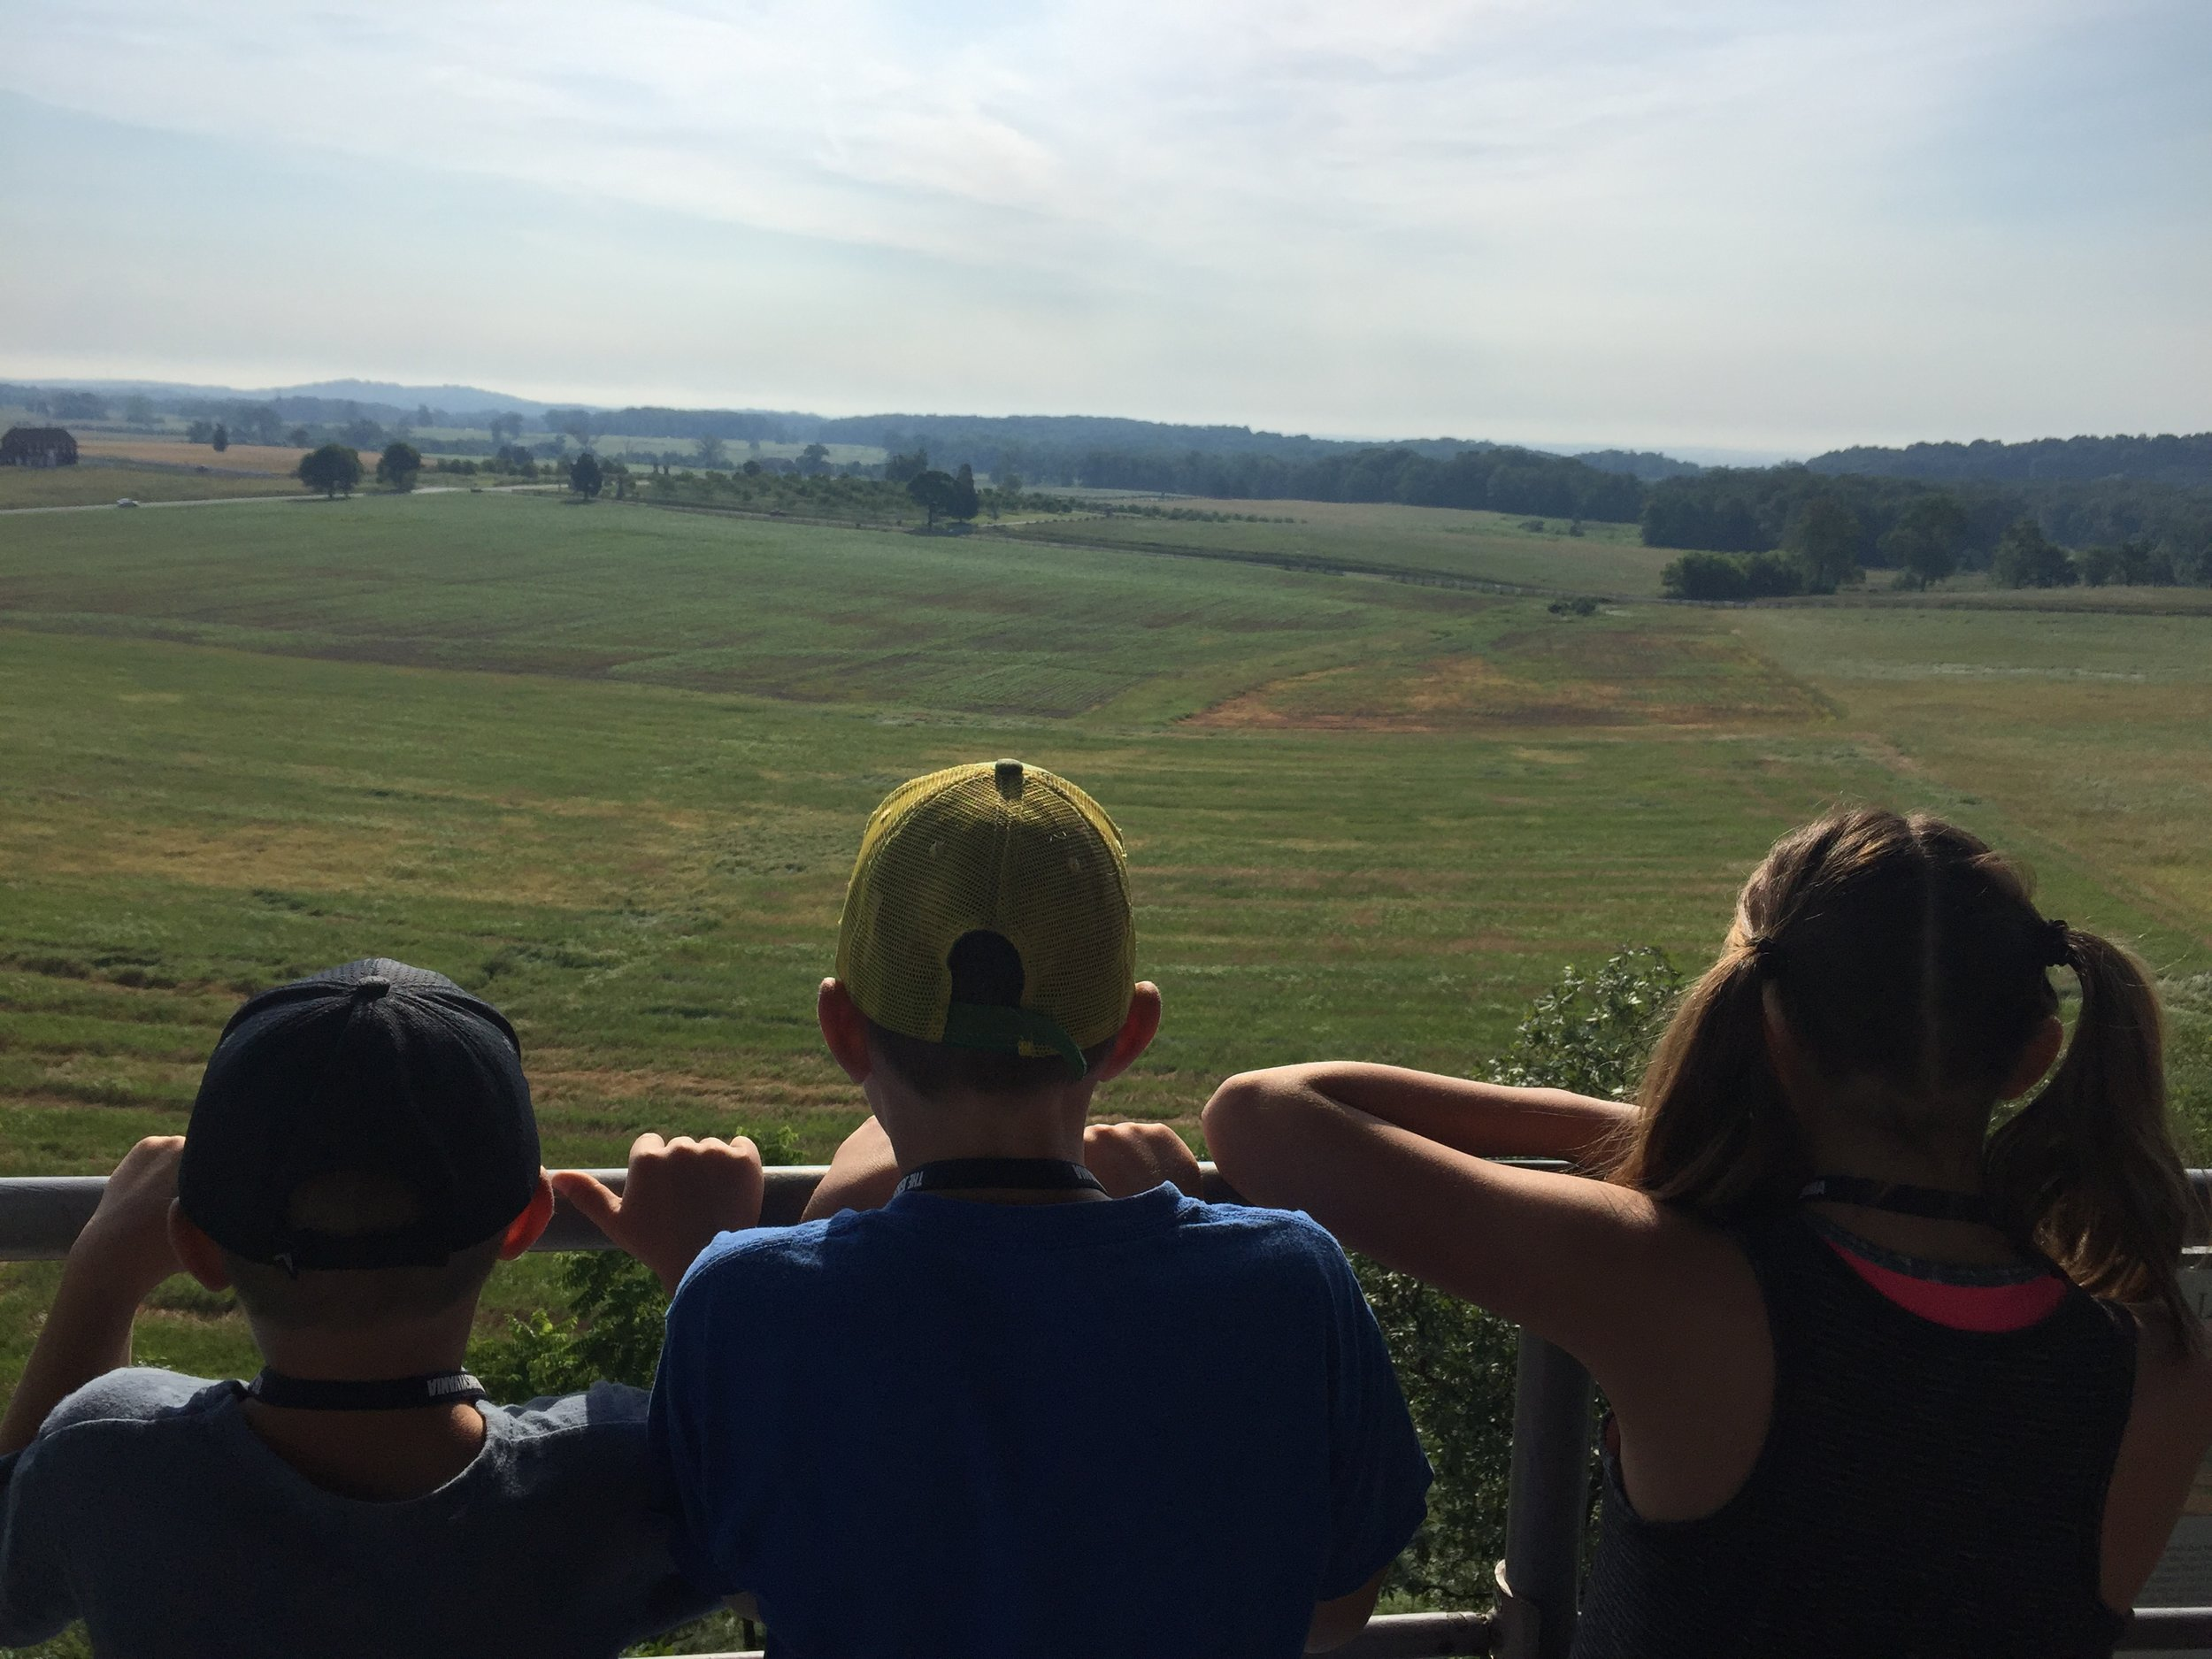 Kids looking out at the Gettysburg battlefields